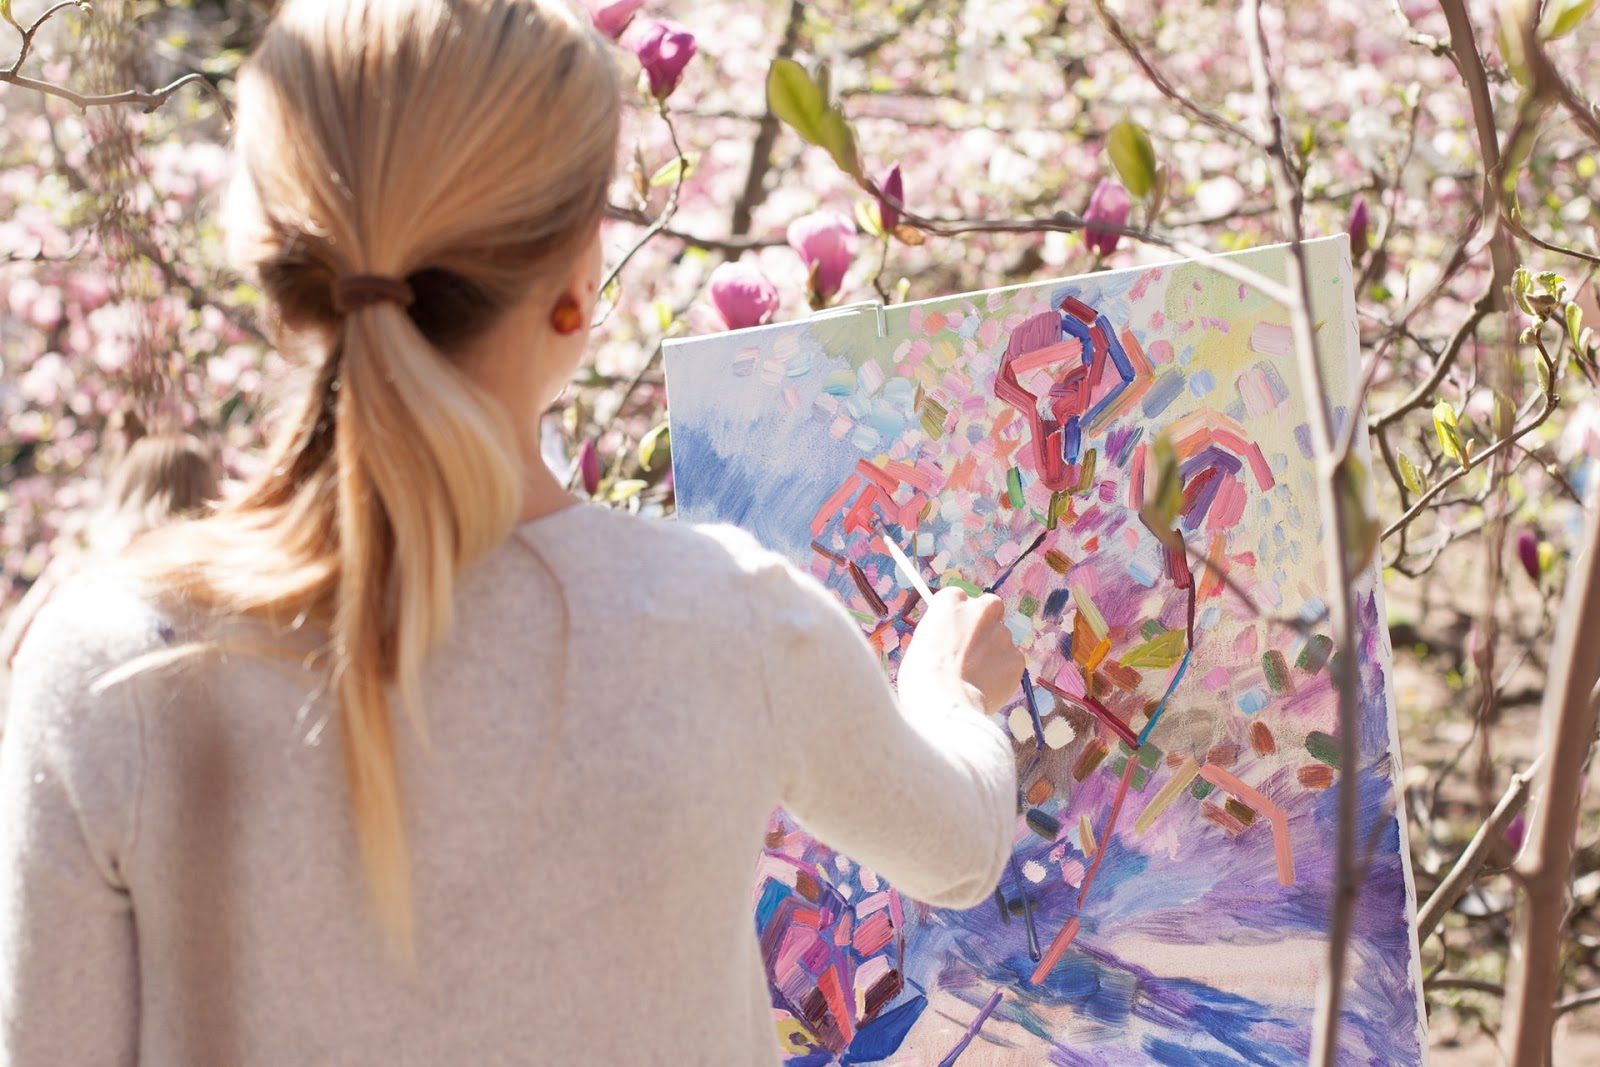 woman painting abstract flowers